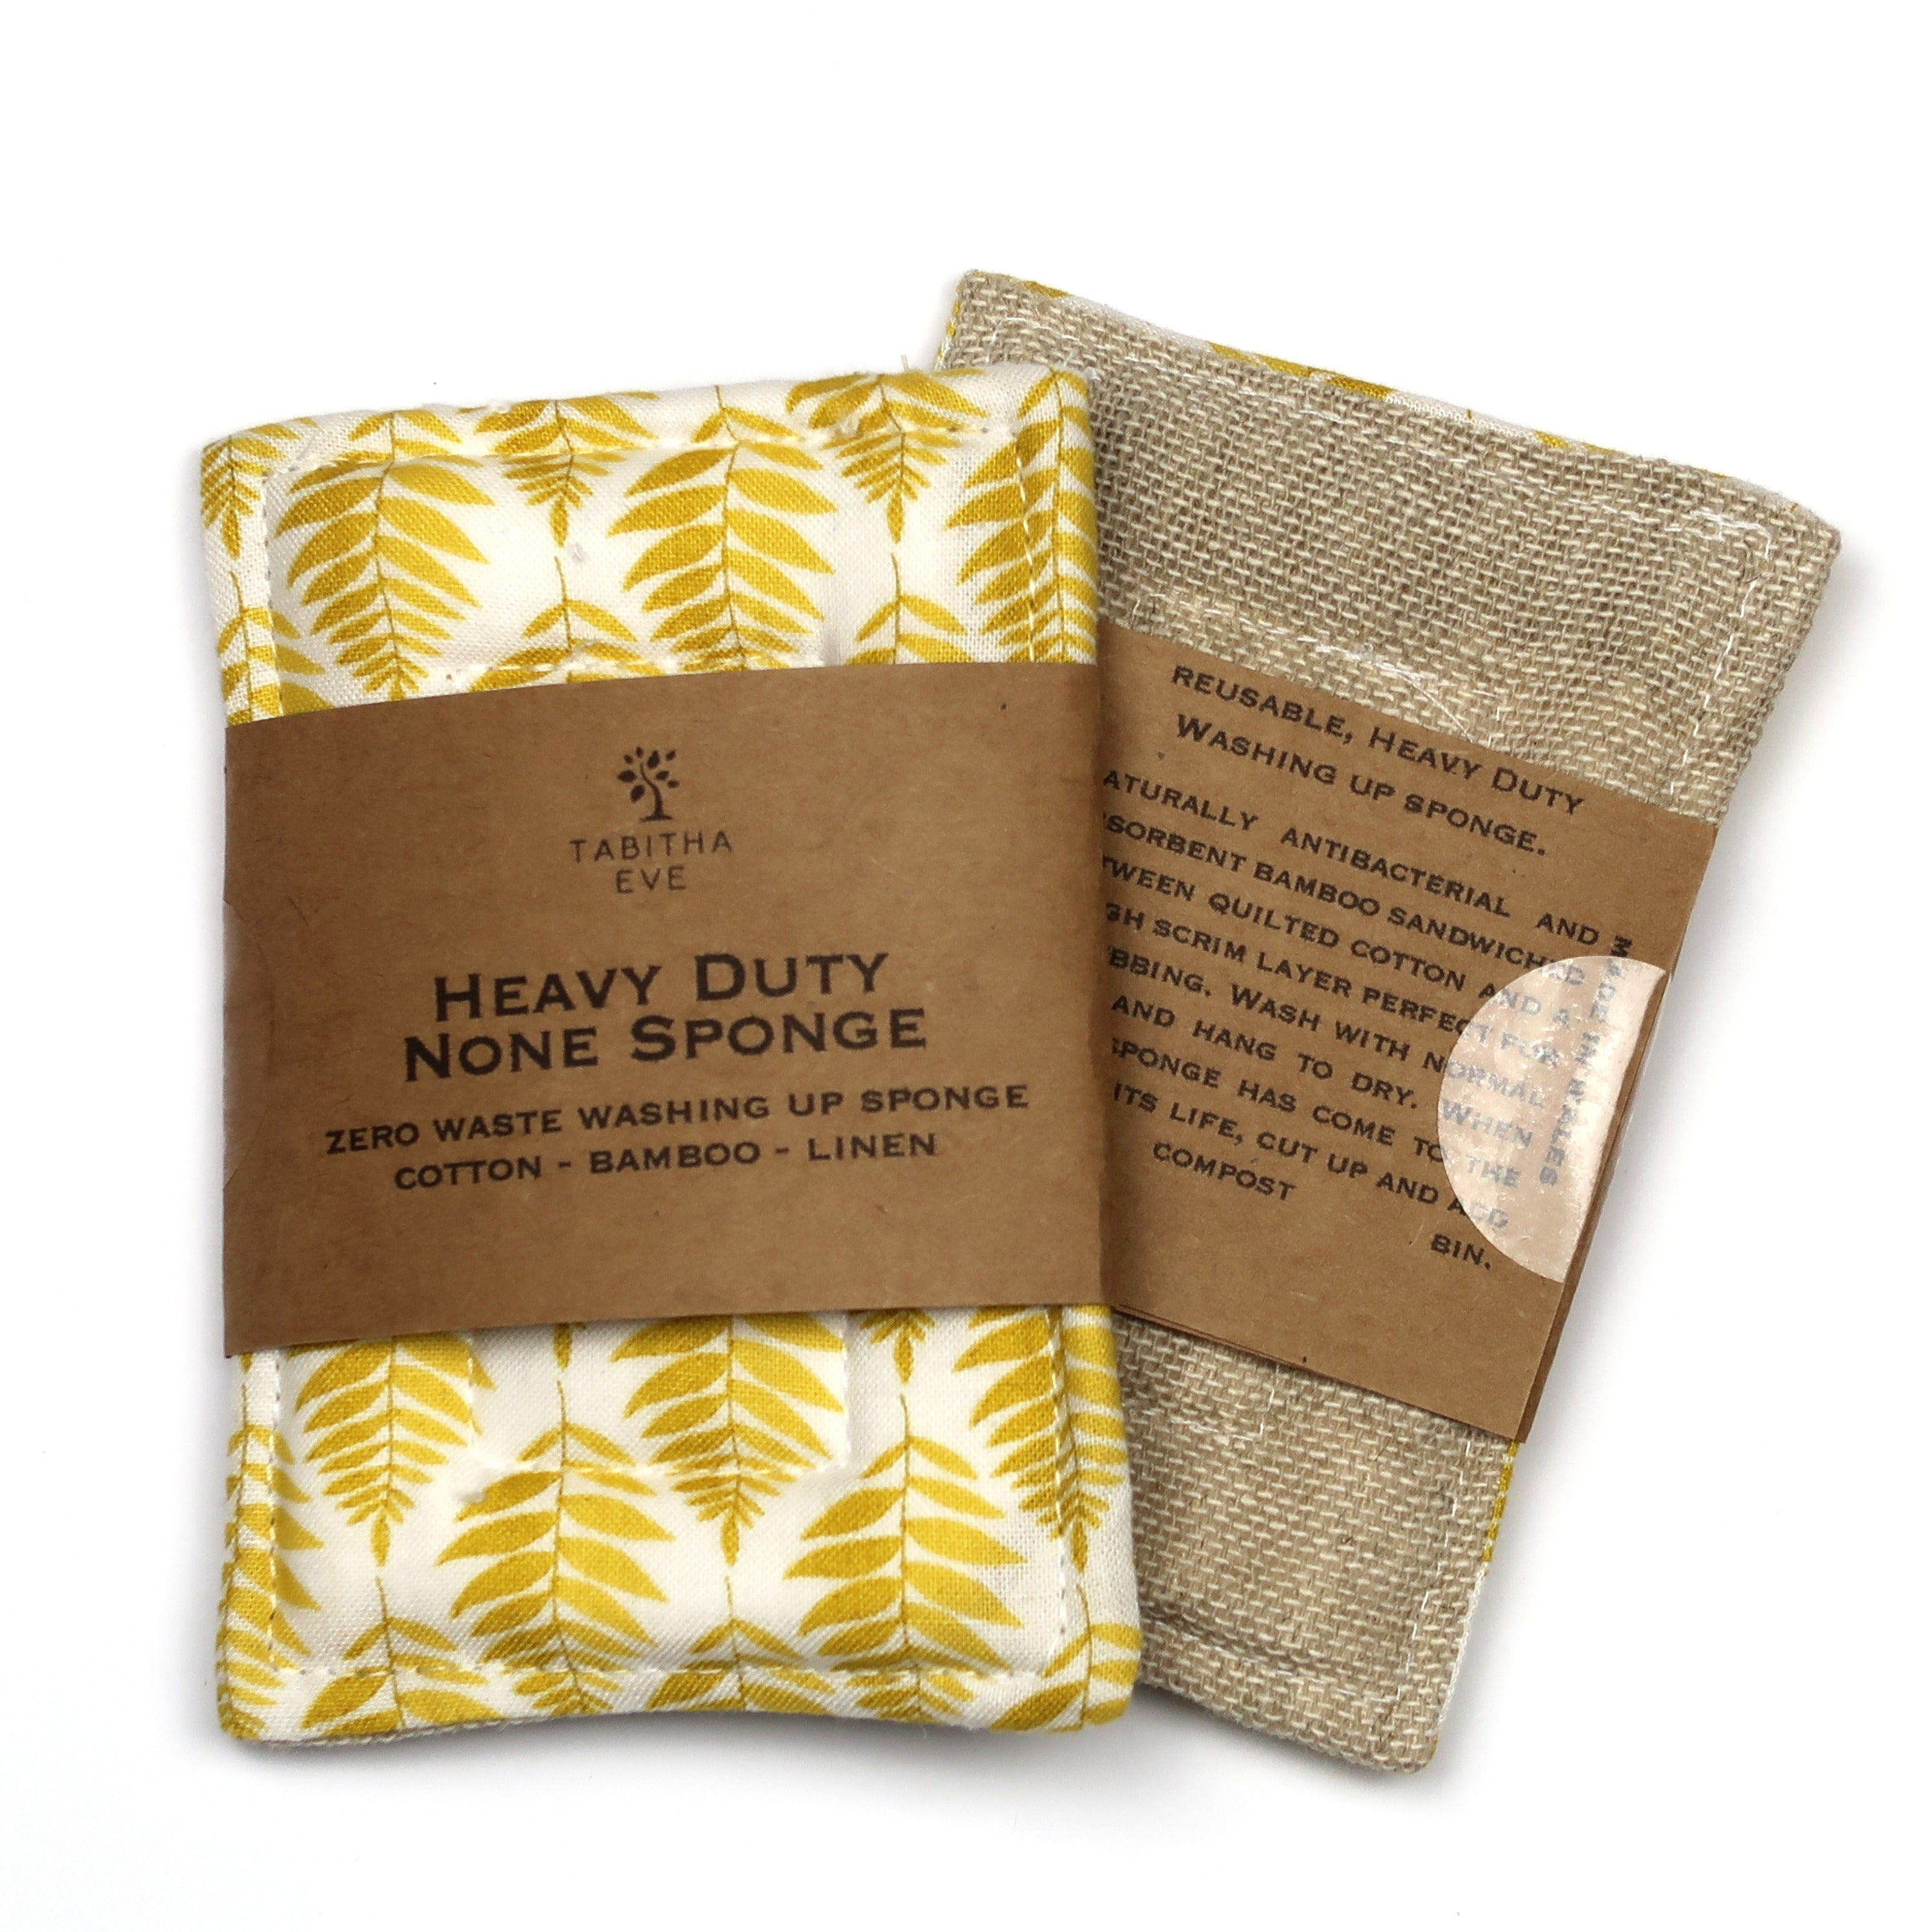 Heavy Duty None Sponge - Yellow Leaf - The Weekly Shop | Plastic Free Online Shop